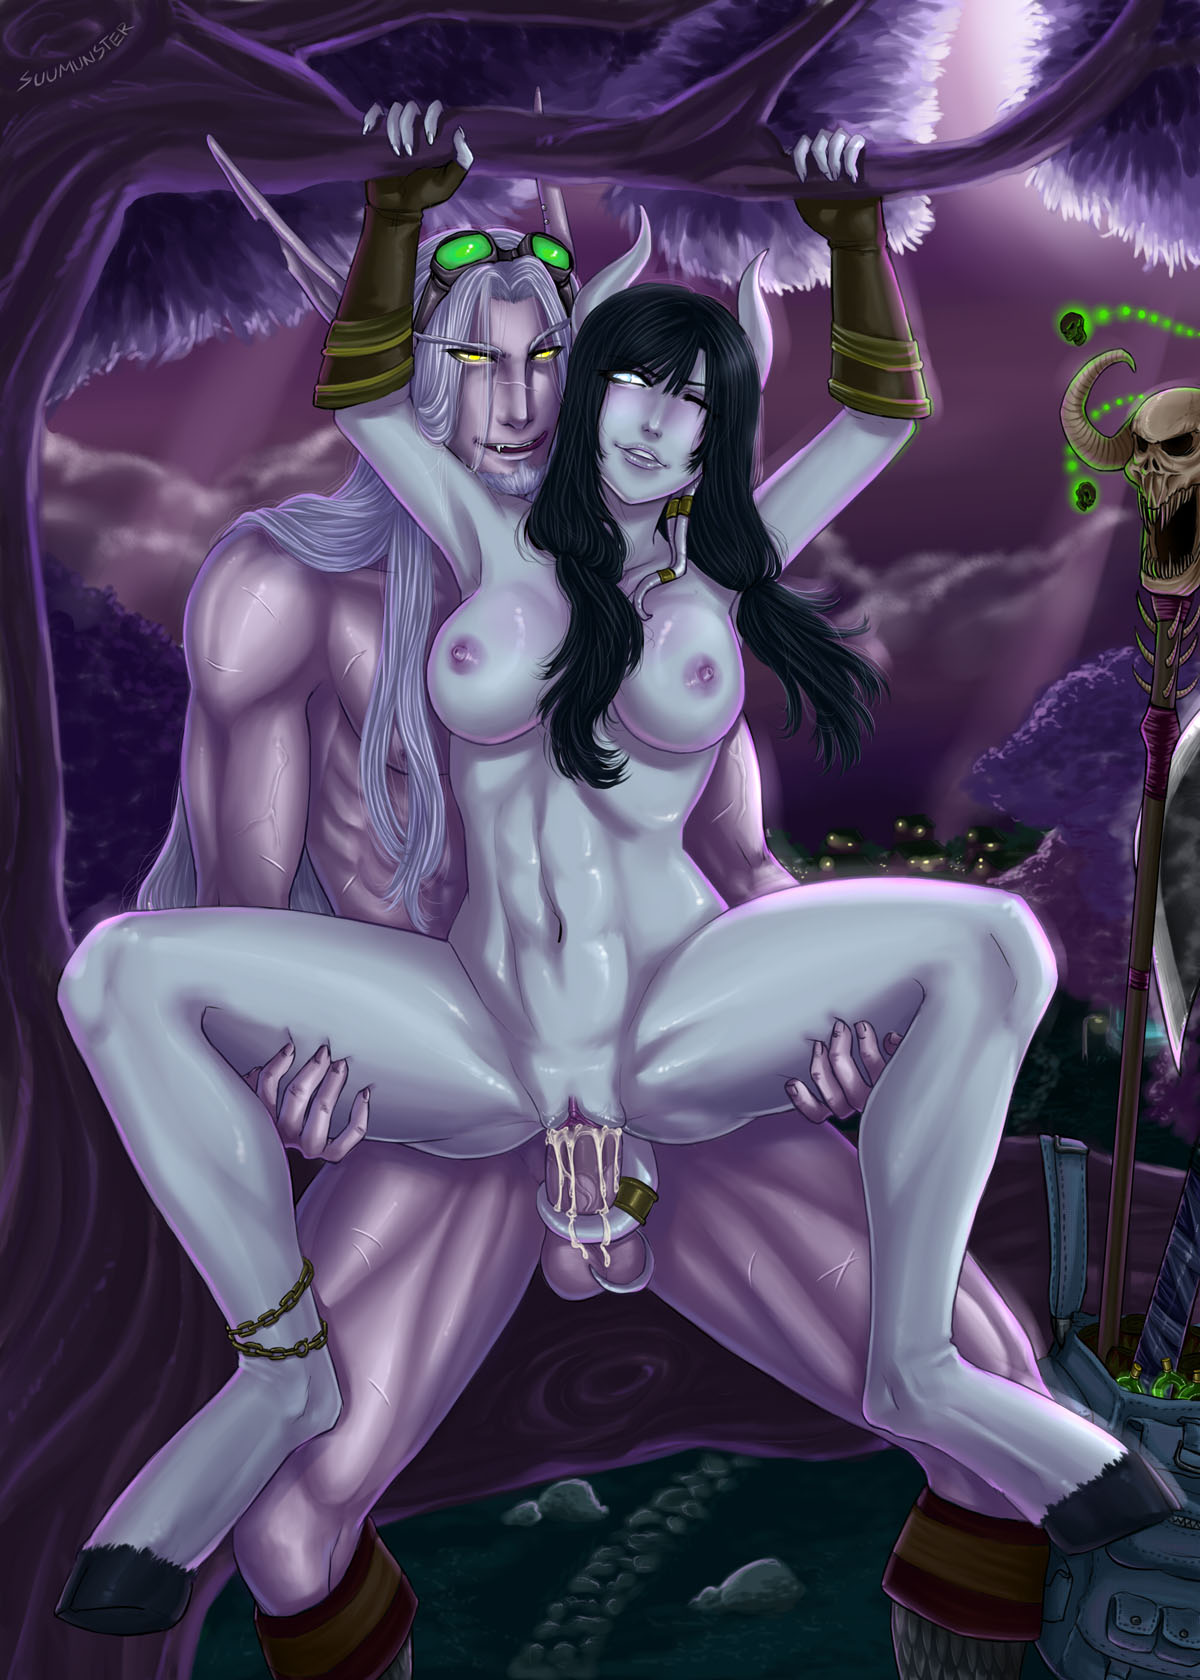 Sexy porns blood elf erotic photos